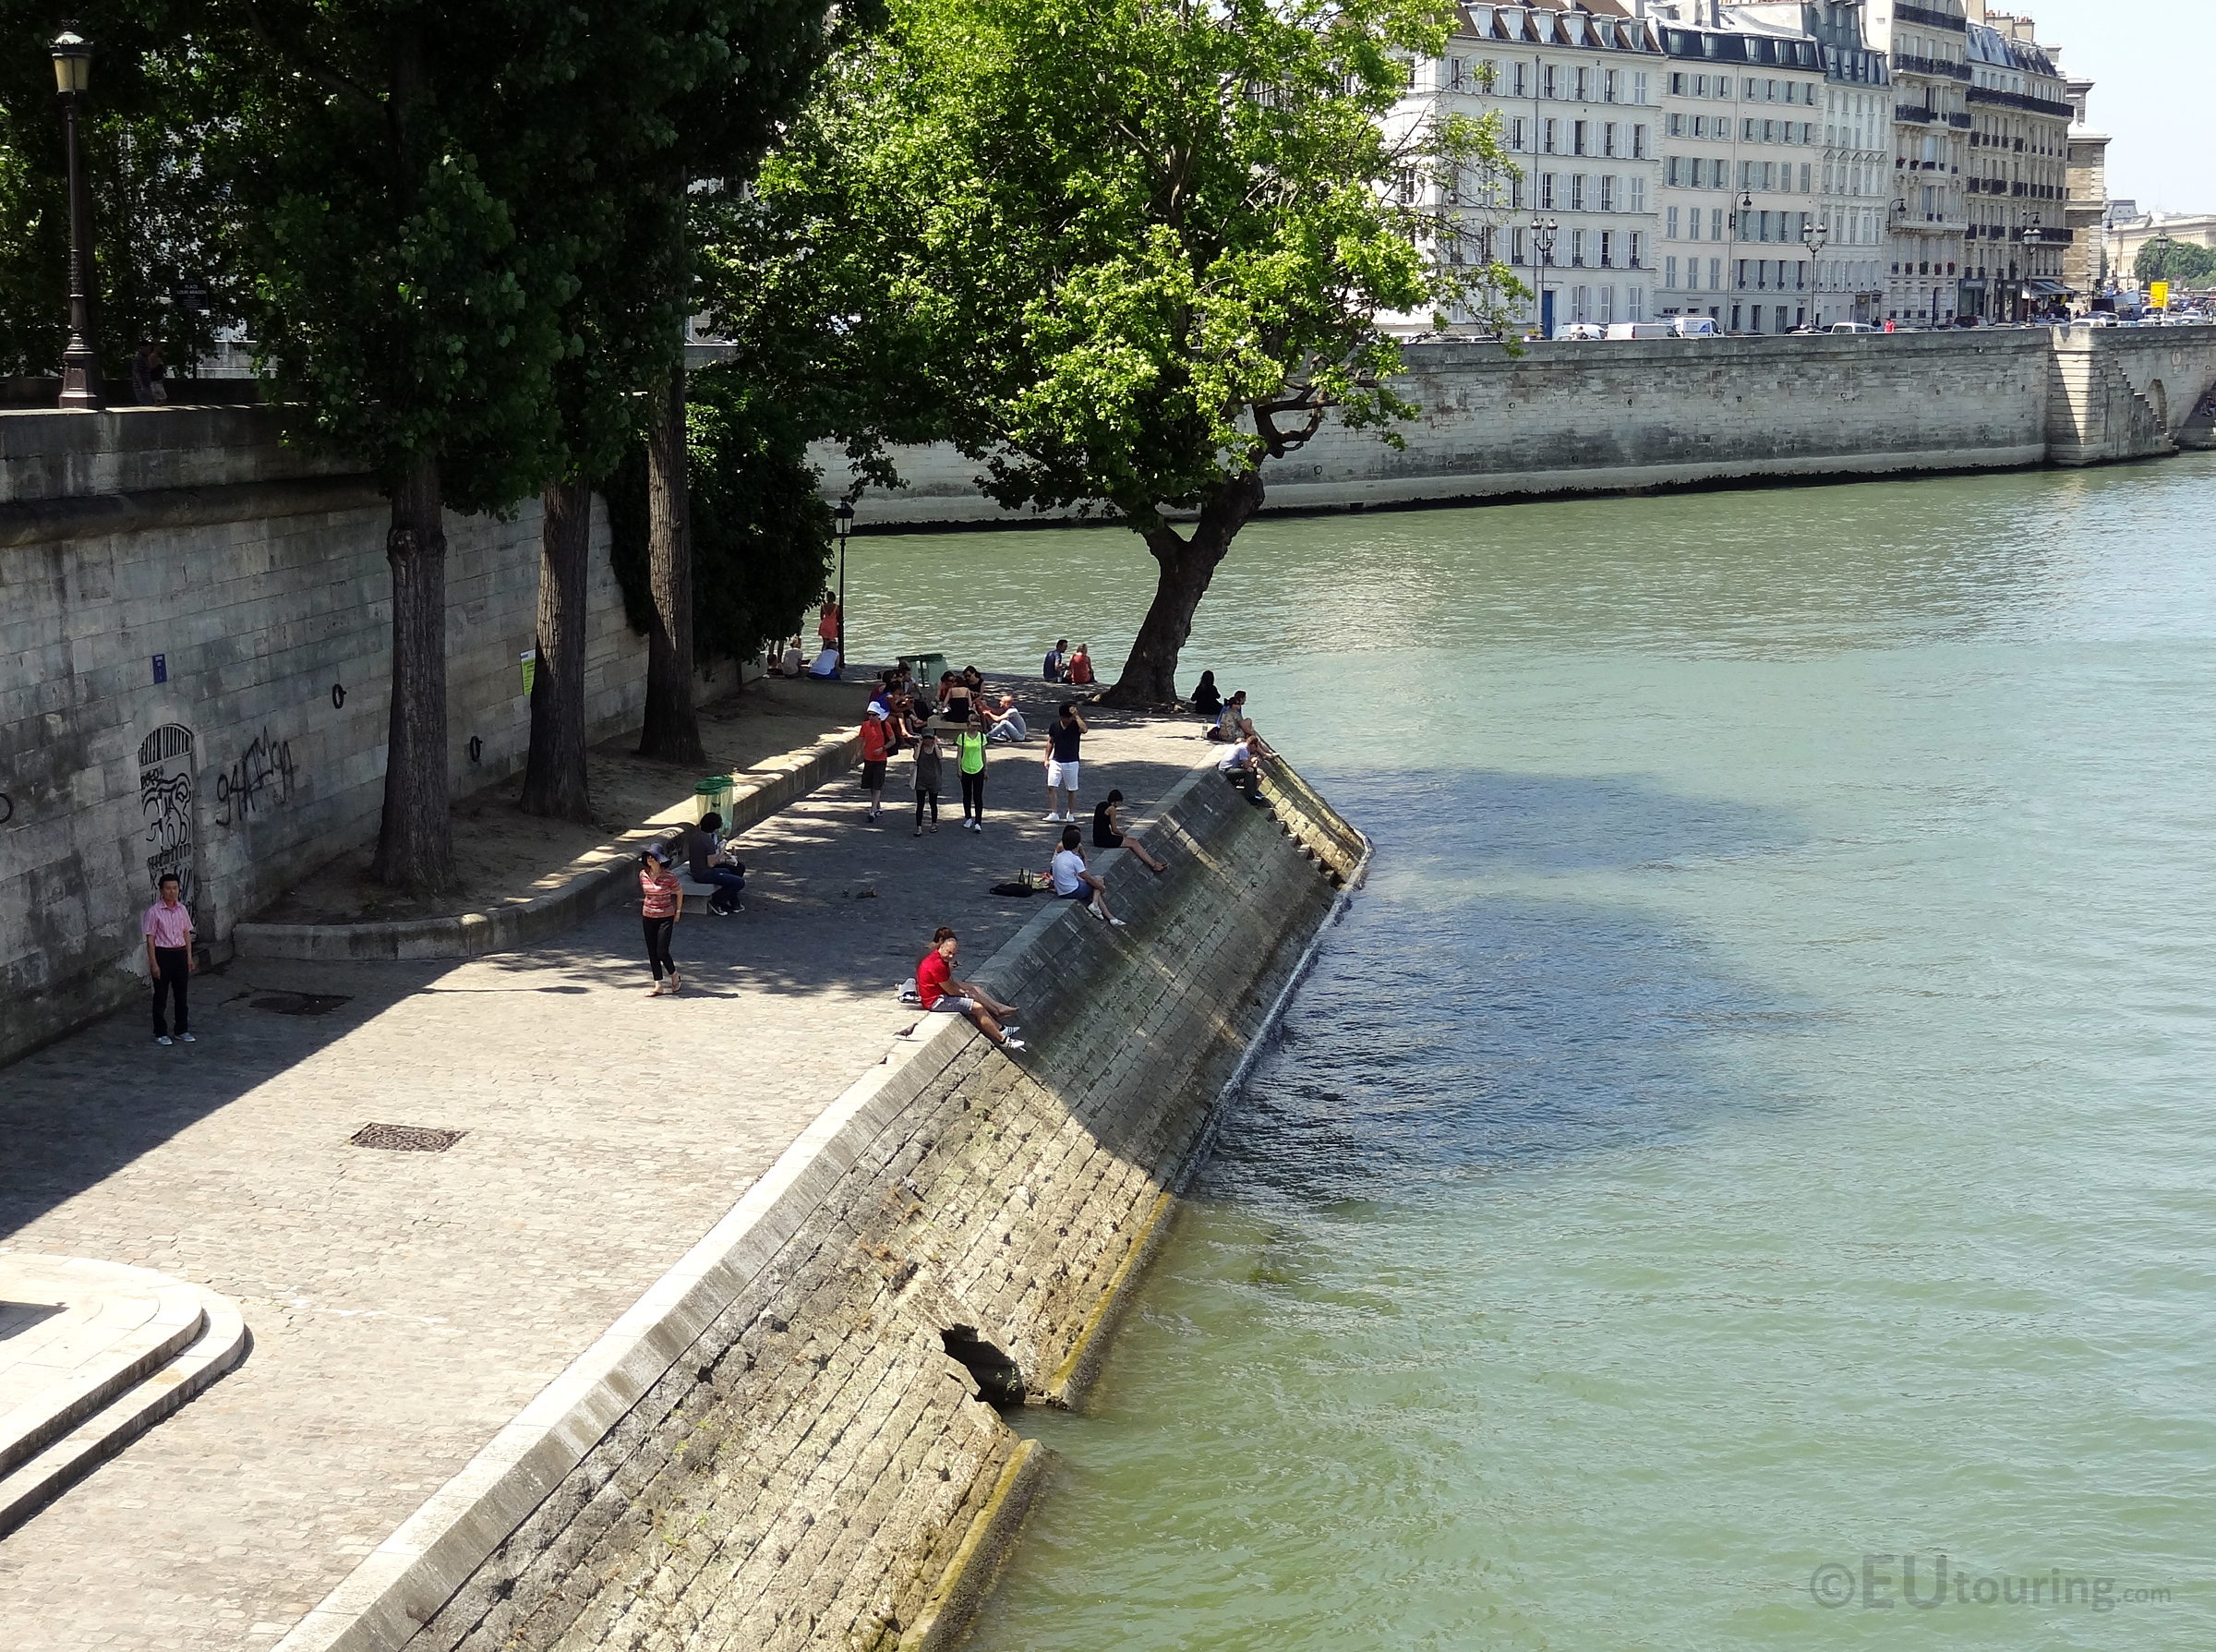 People relaxing beside the river